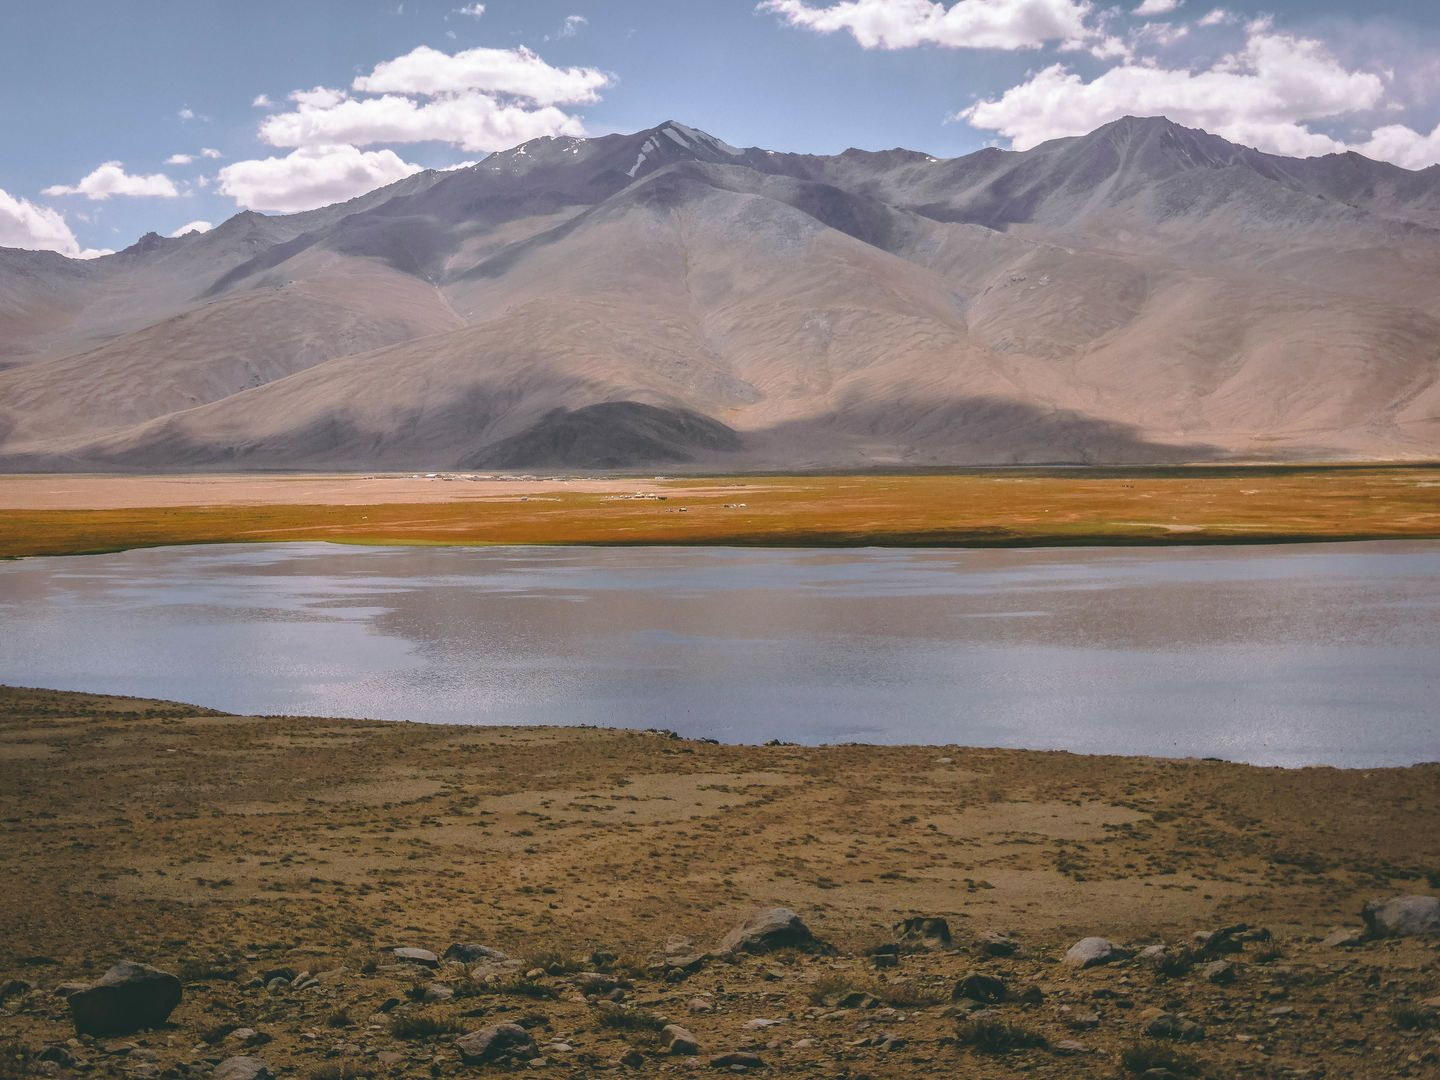 BulunKul lake, Pamir nature